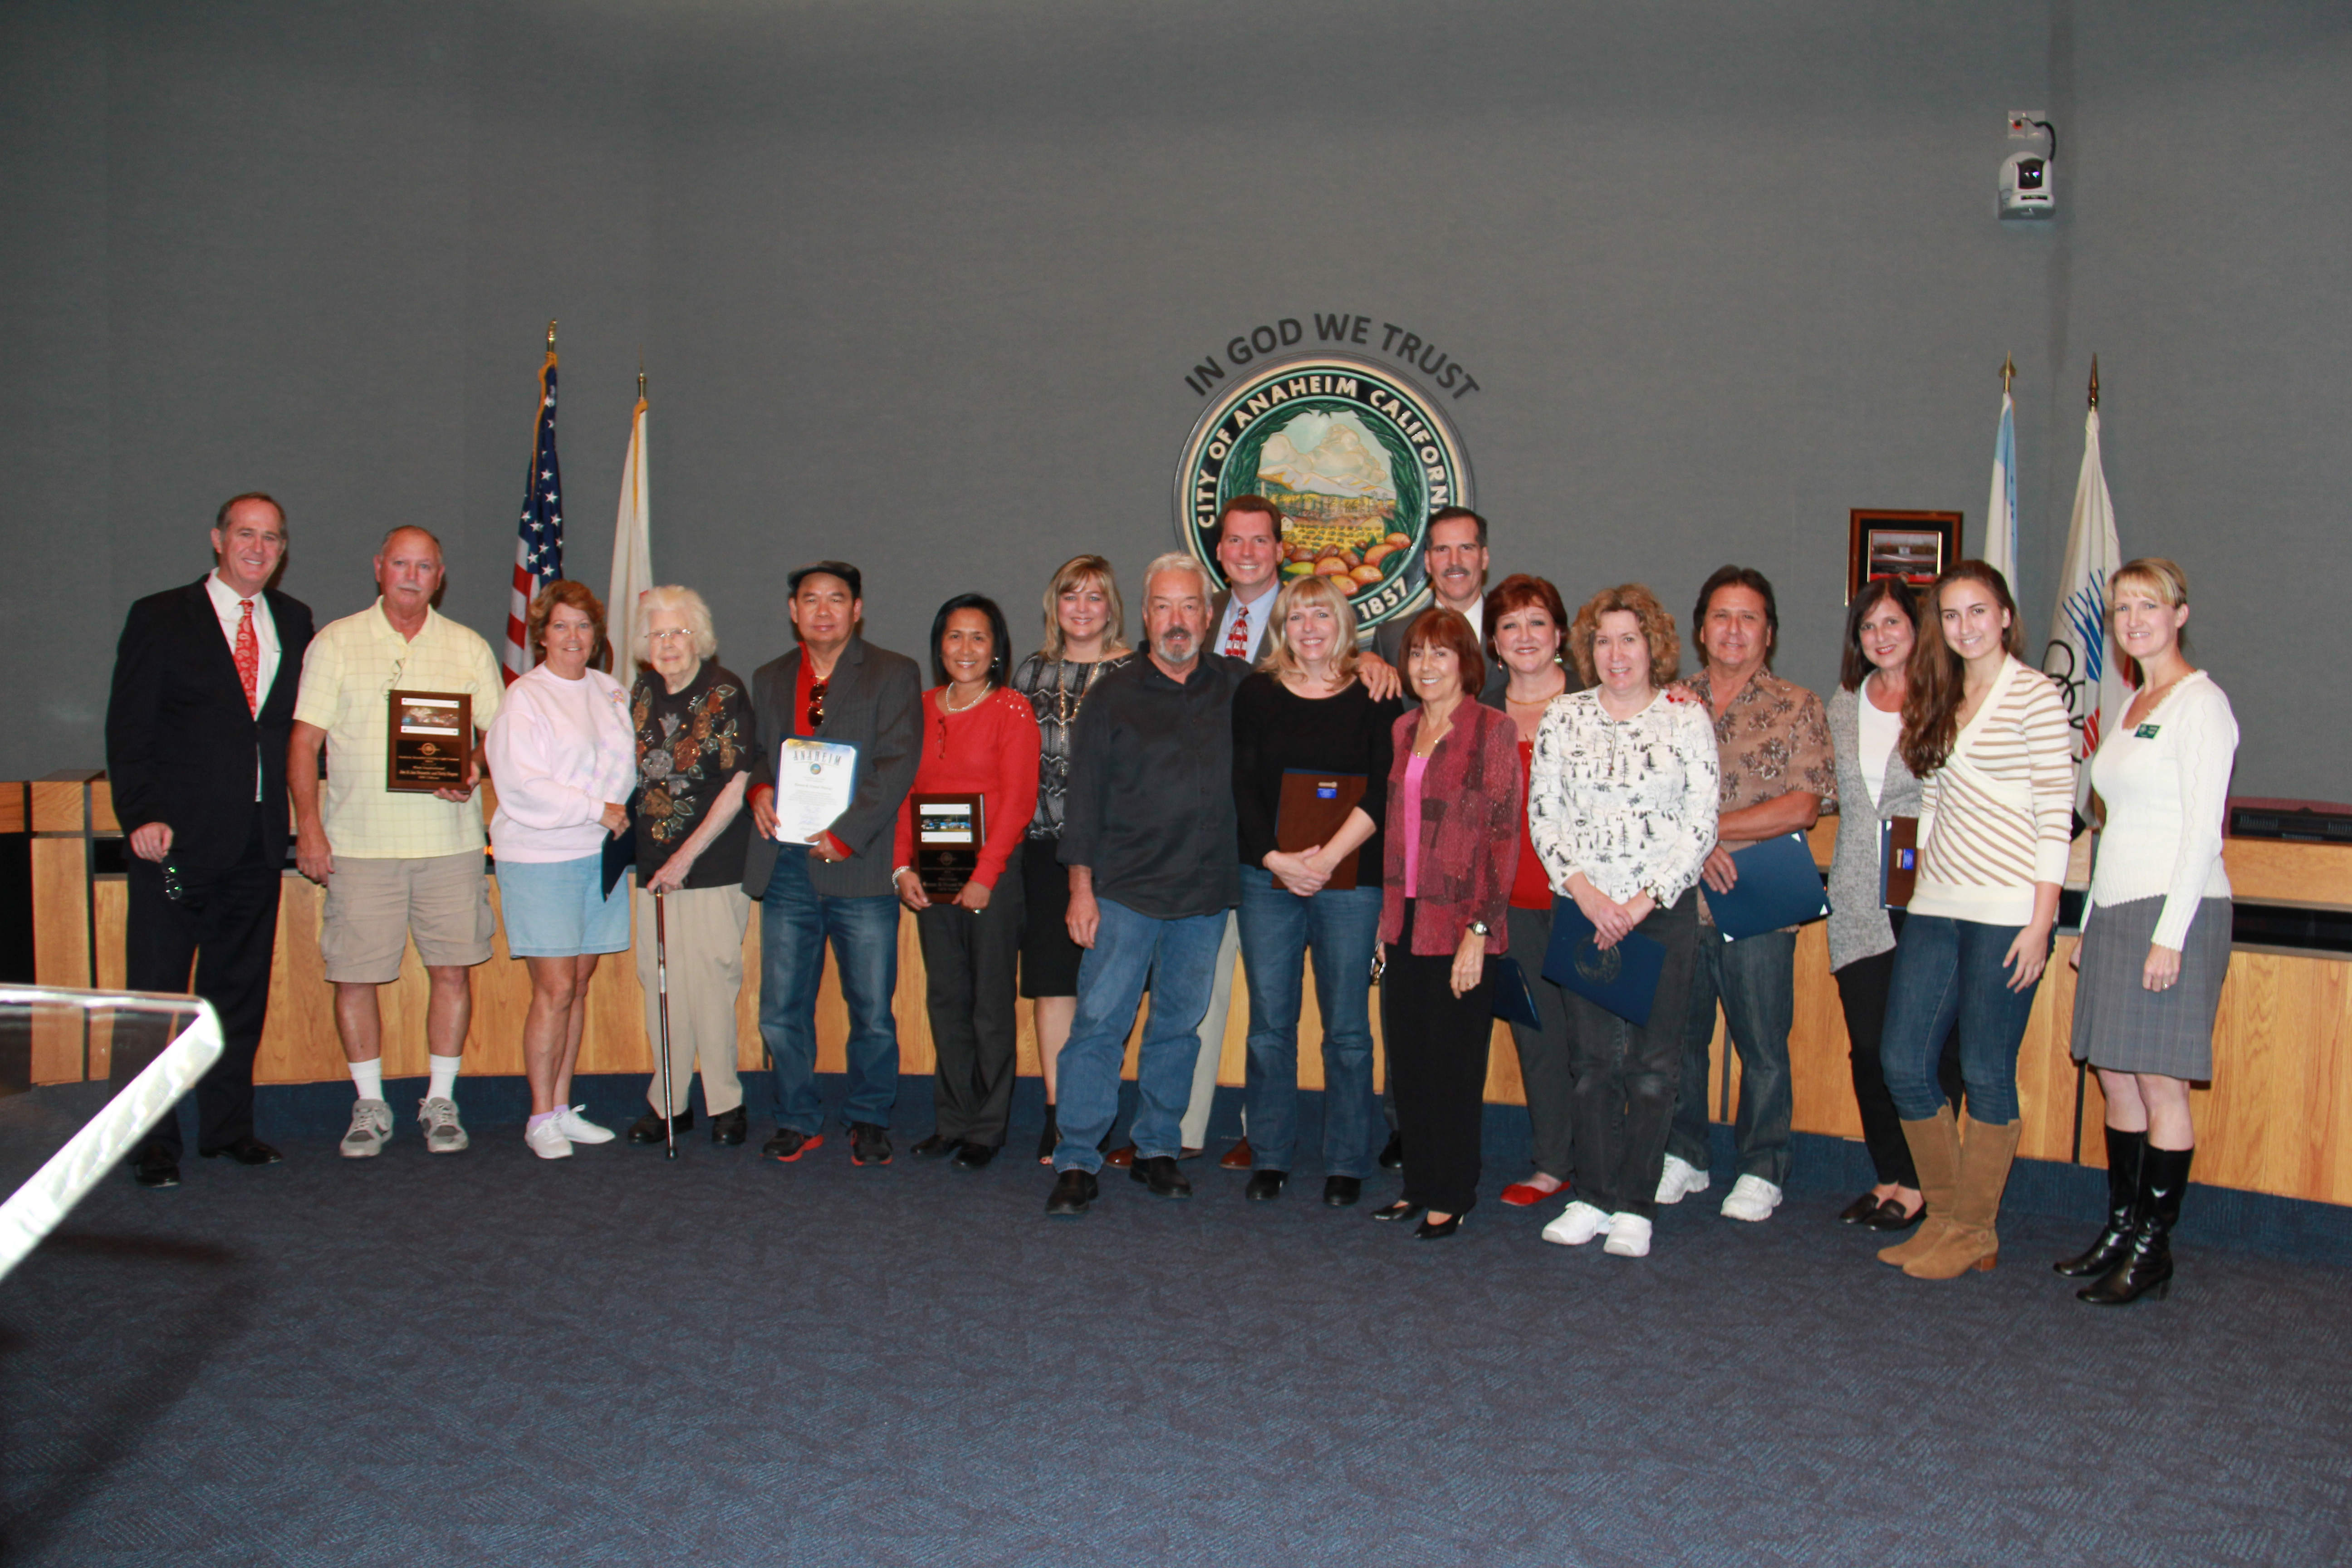 Group Photo at the December 23, 2014 City Council